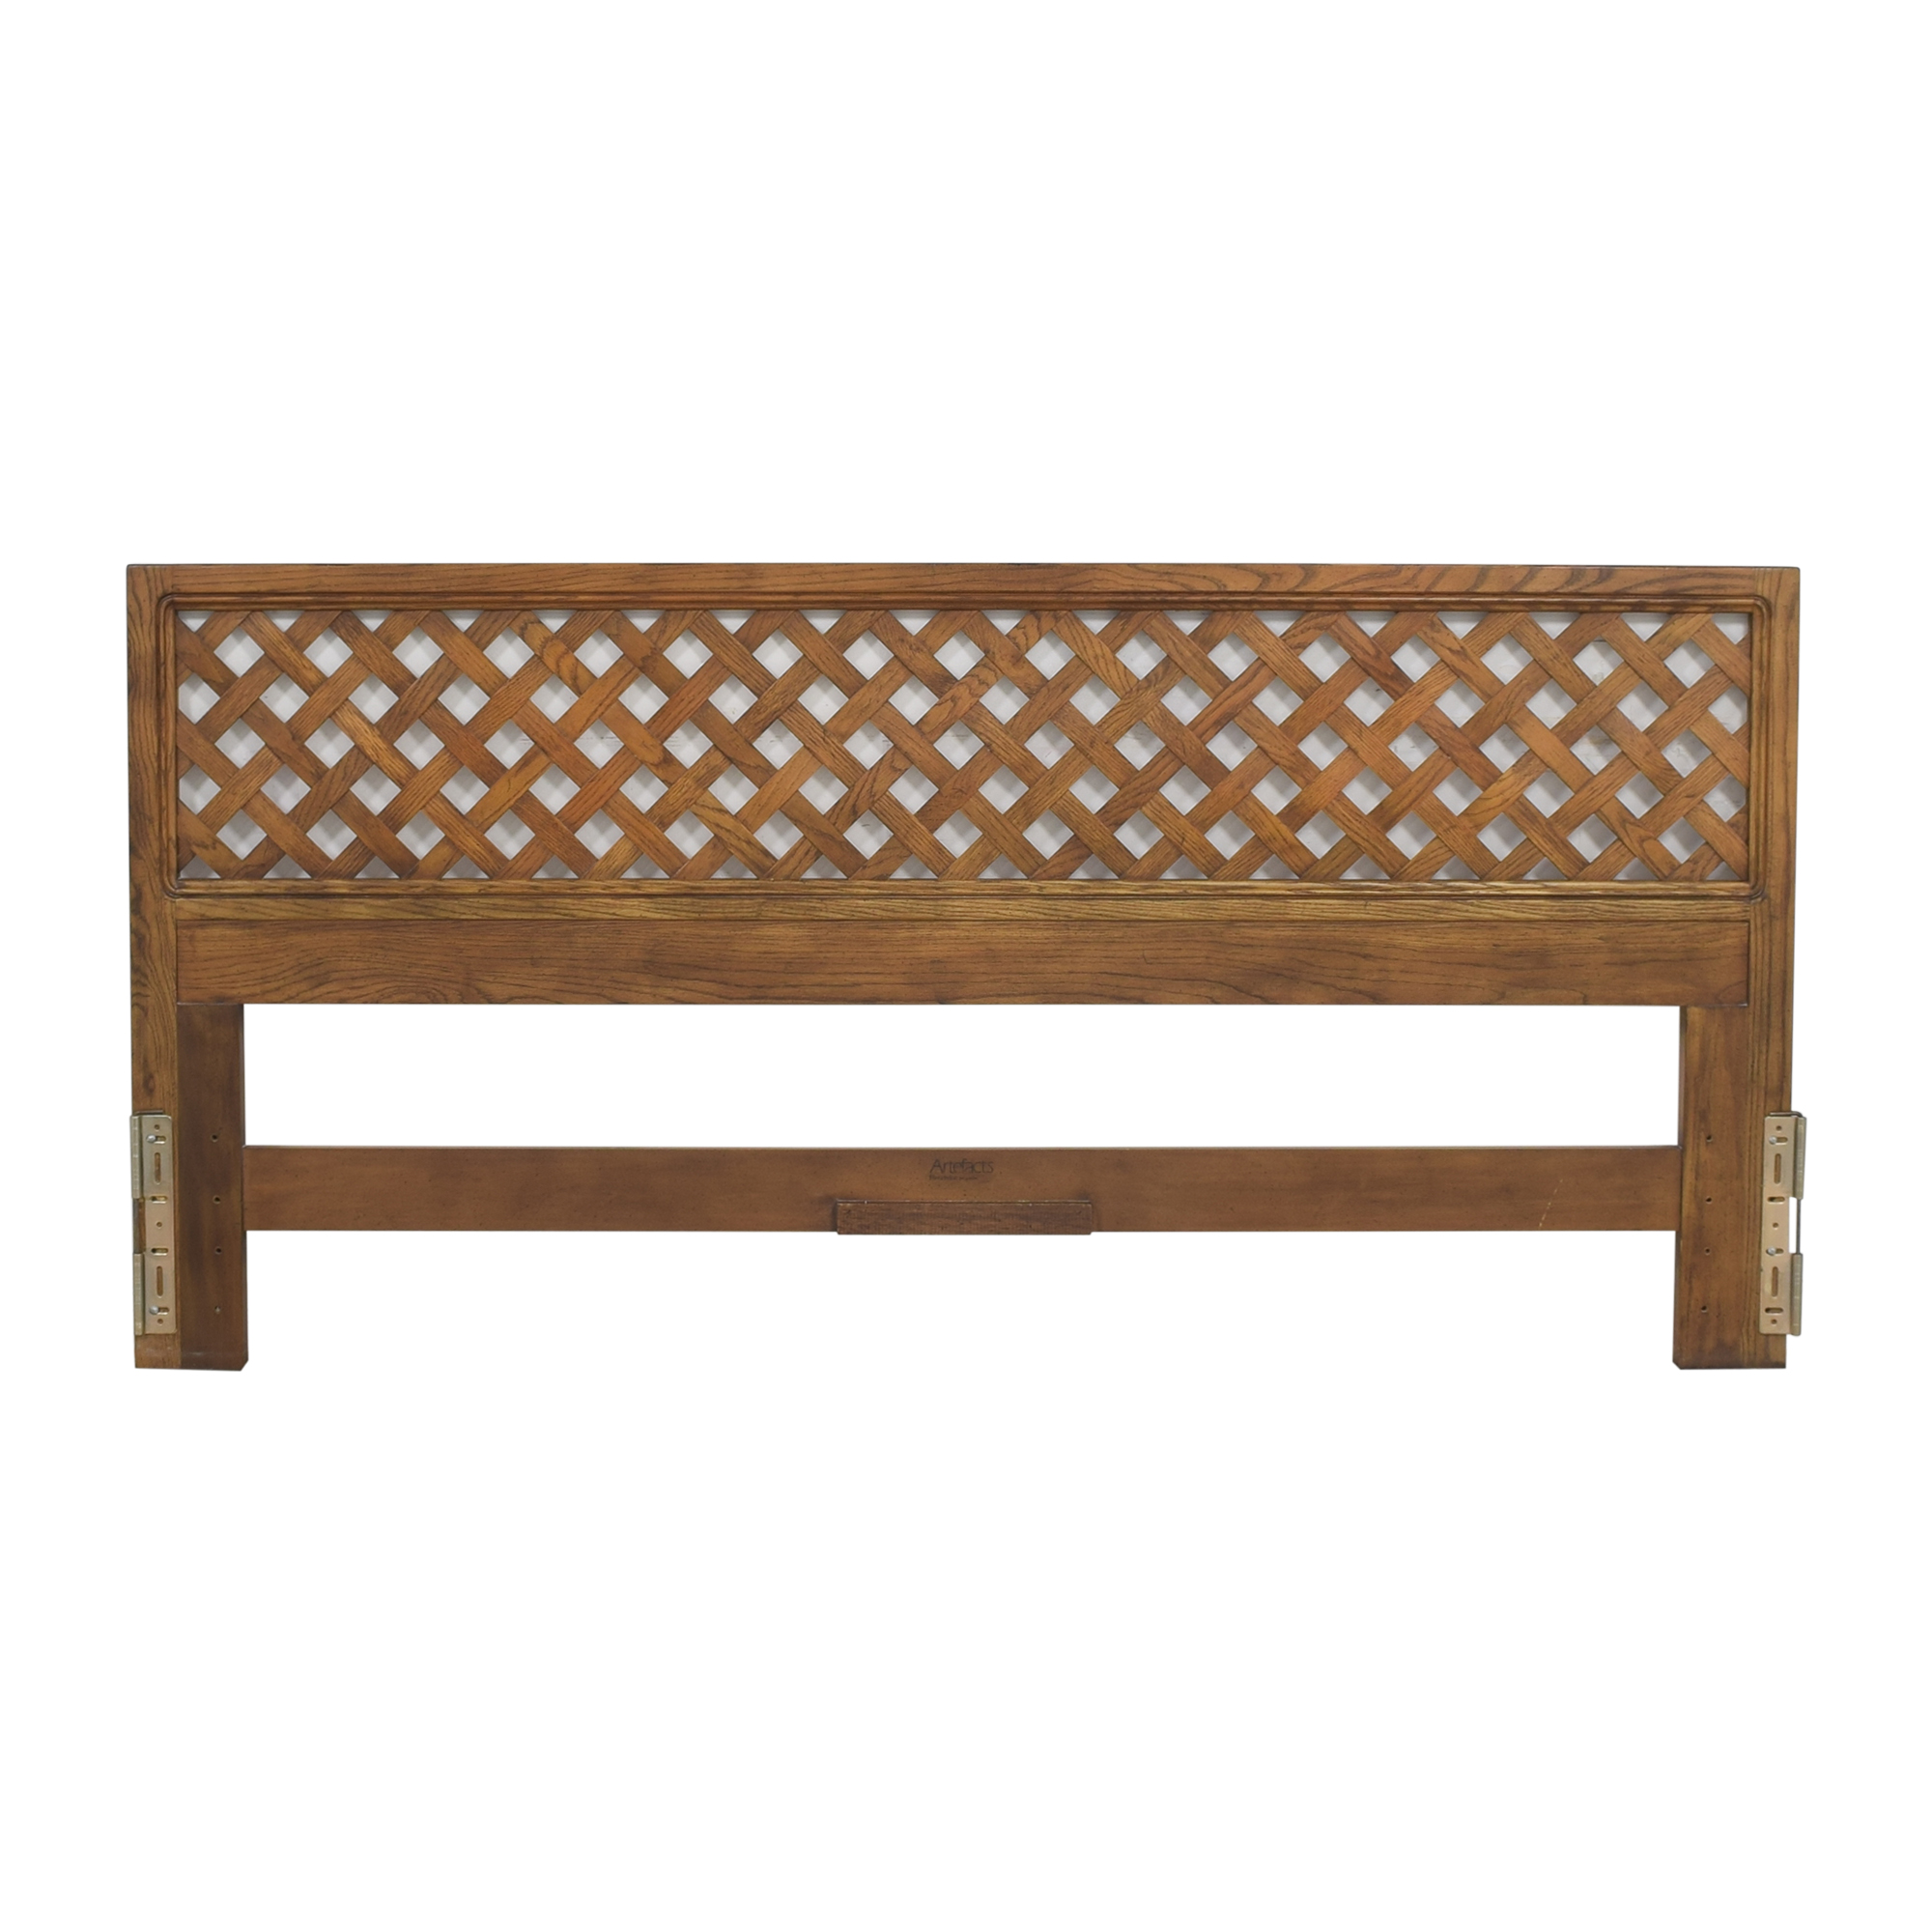 shop Henredon Artefacts Openwork King Headboard Henredon Furniture